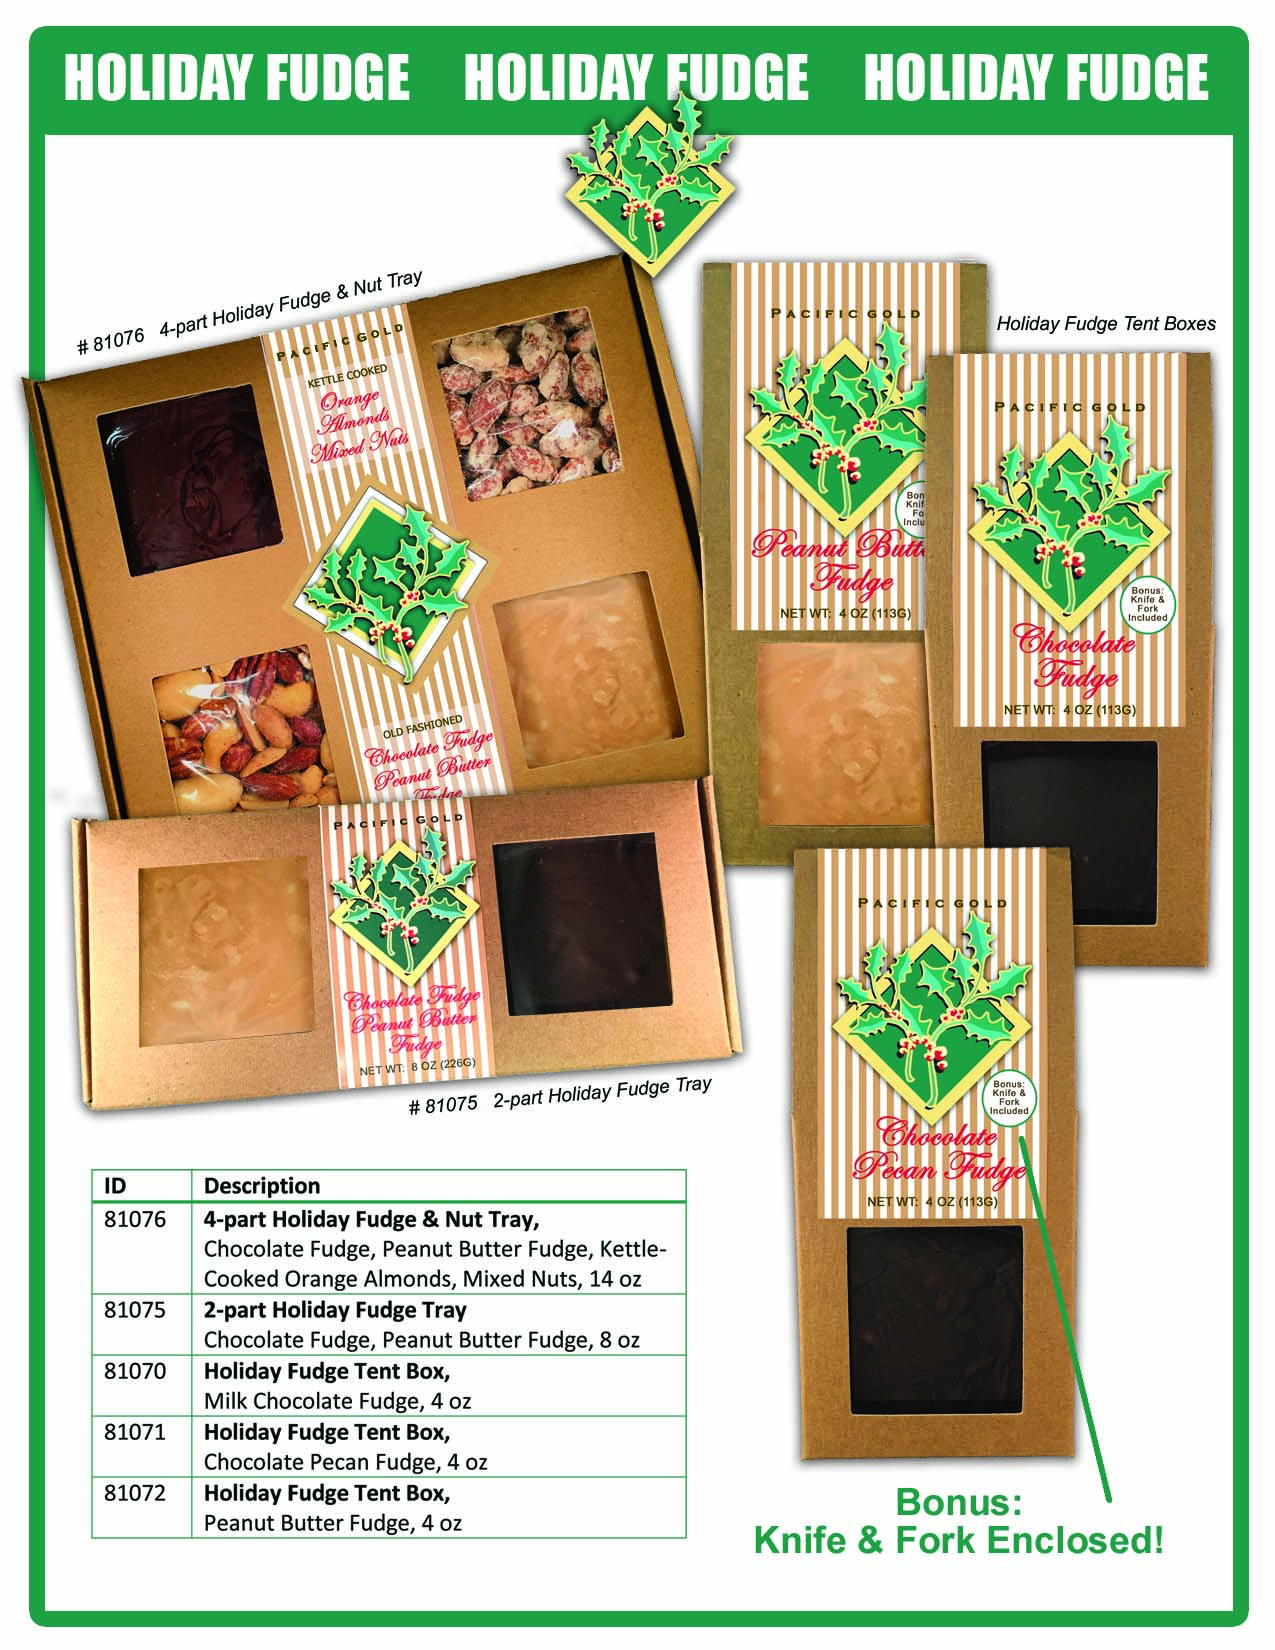 fudge-brochure-p-1-low-res-copy.jpg